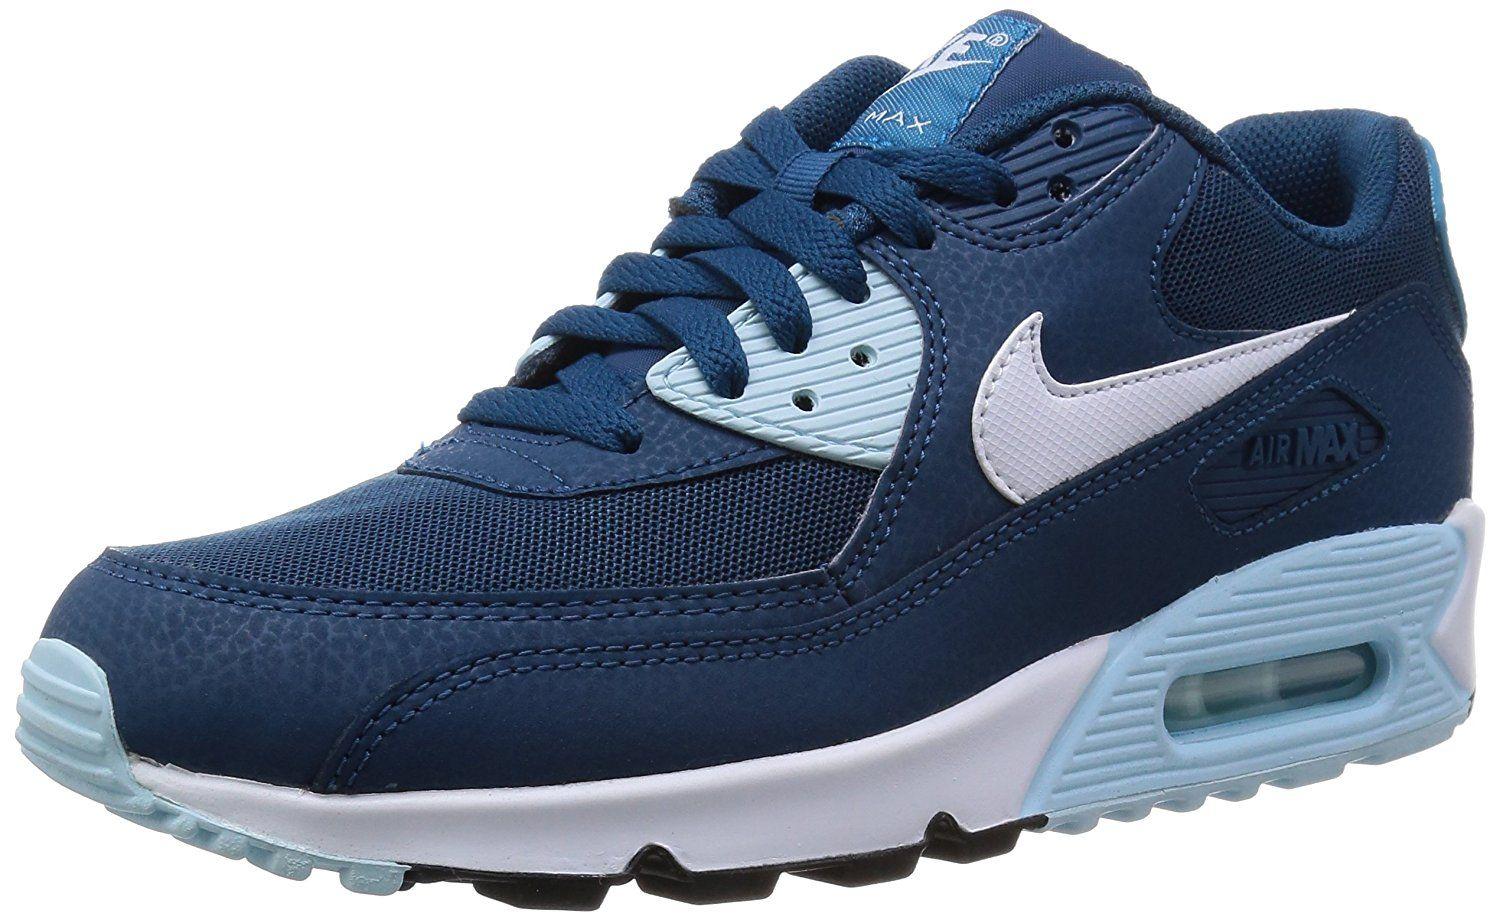 768d0ae4d4b6 NIKE WMNS AIR MAX 90 ESSENTIAL Sneakers Running Shoes 616730-400 BLUE